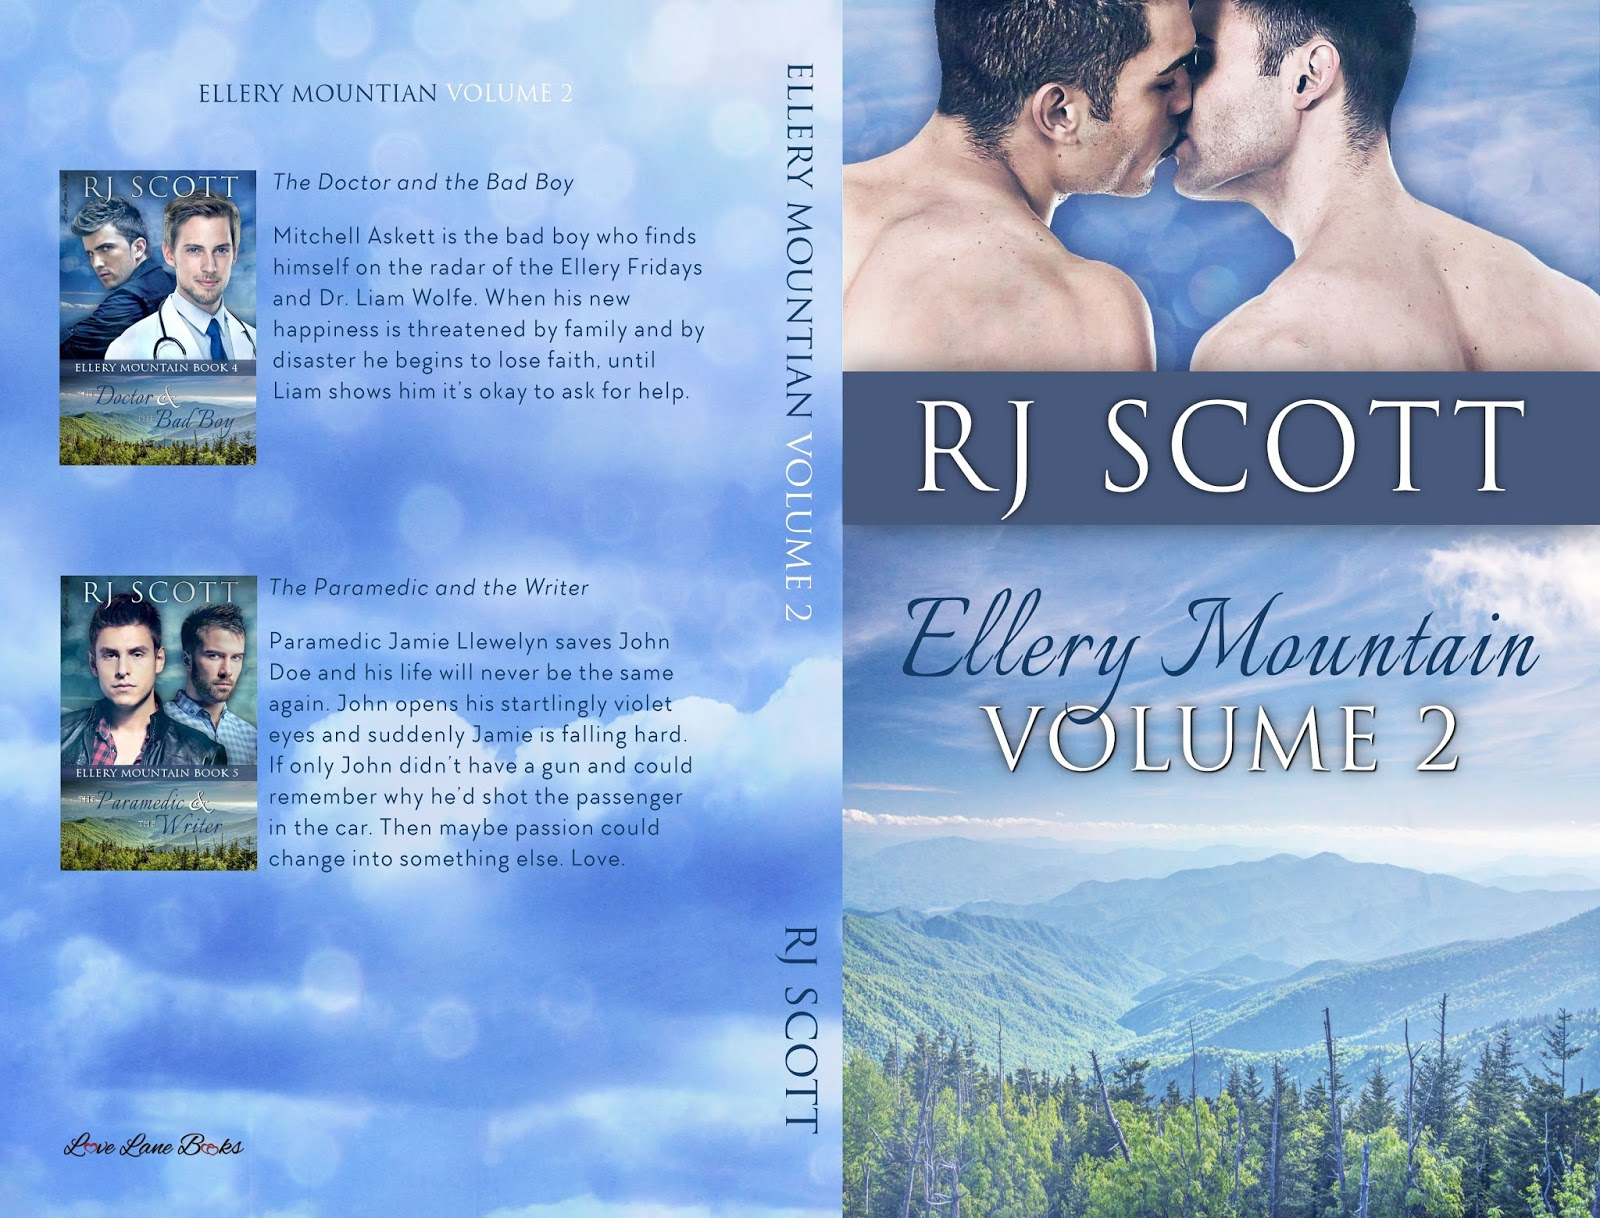 CROOKED TREE RANCH, VOL. 1 RJ Scott EROTIC GAY CONTEMP COWBOY 11/15 ~ GREAT!